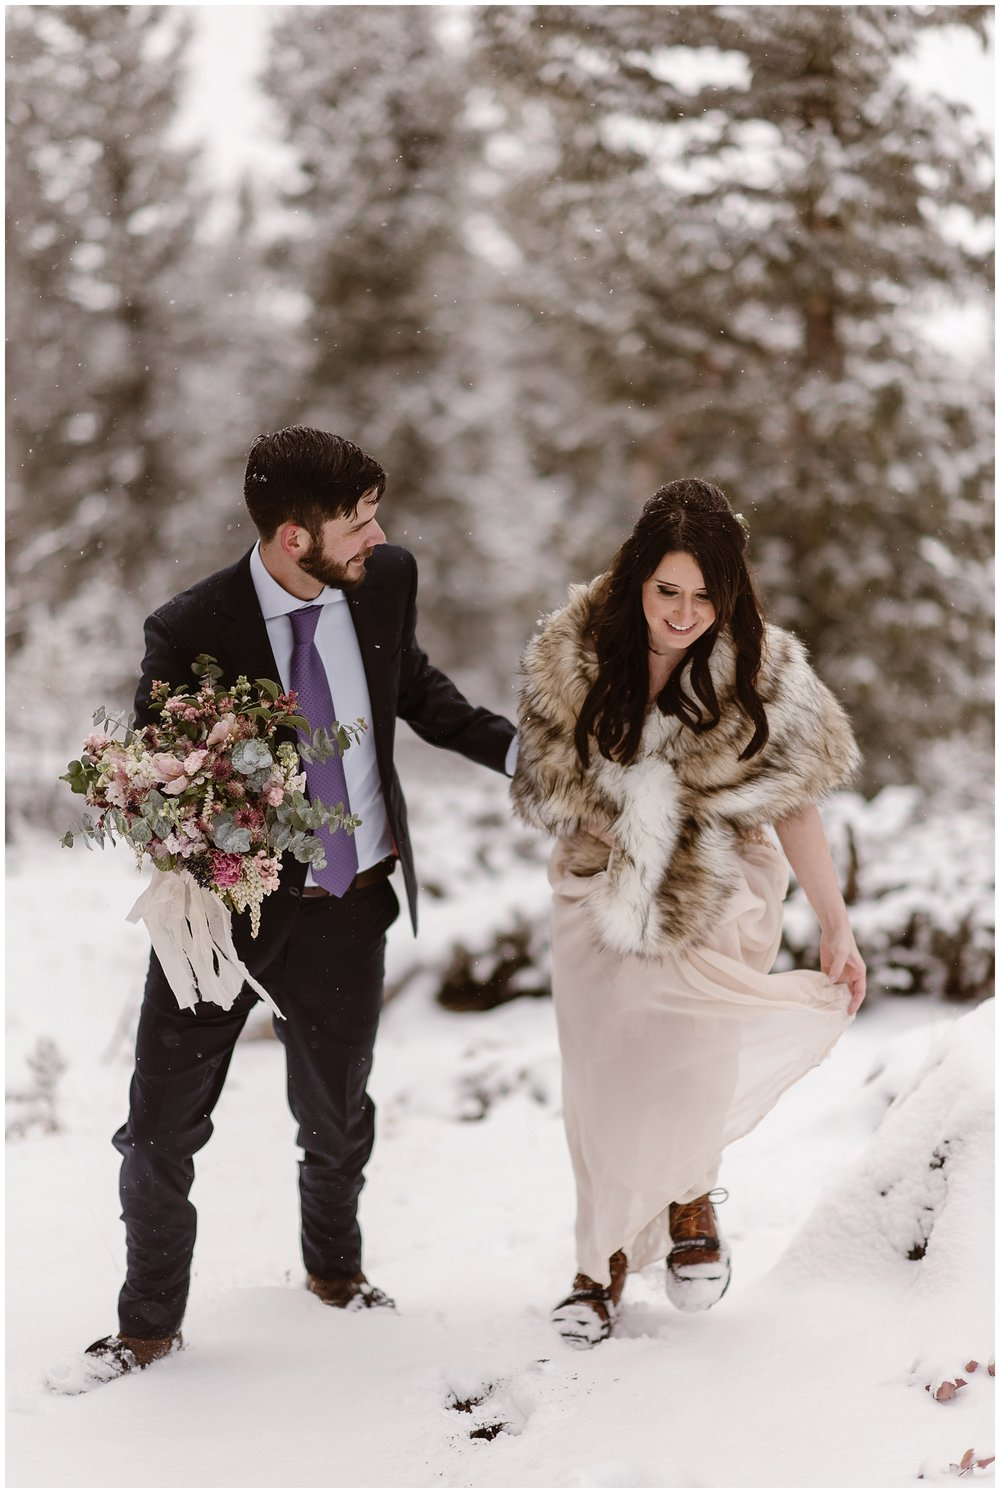 Marlayna and Austin walk through the snow for their snowy winter elopement ceremony. Photo by Adventure Instead, Maddie Mae Elopement Photographers.